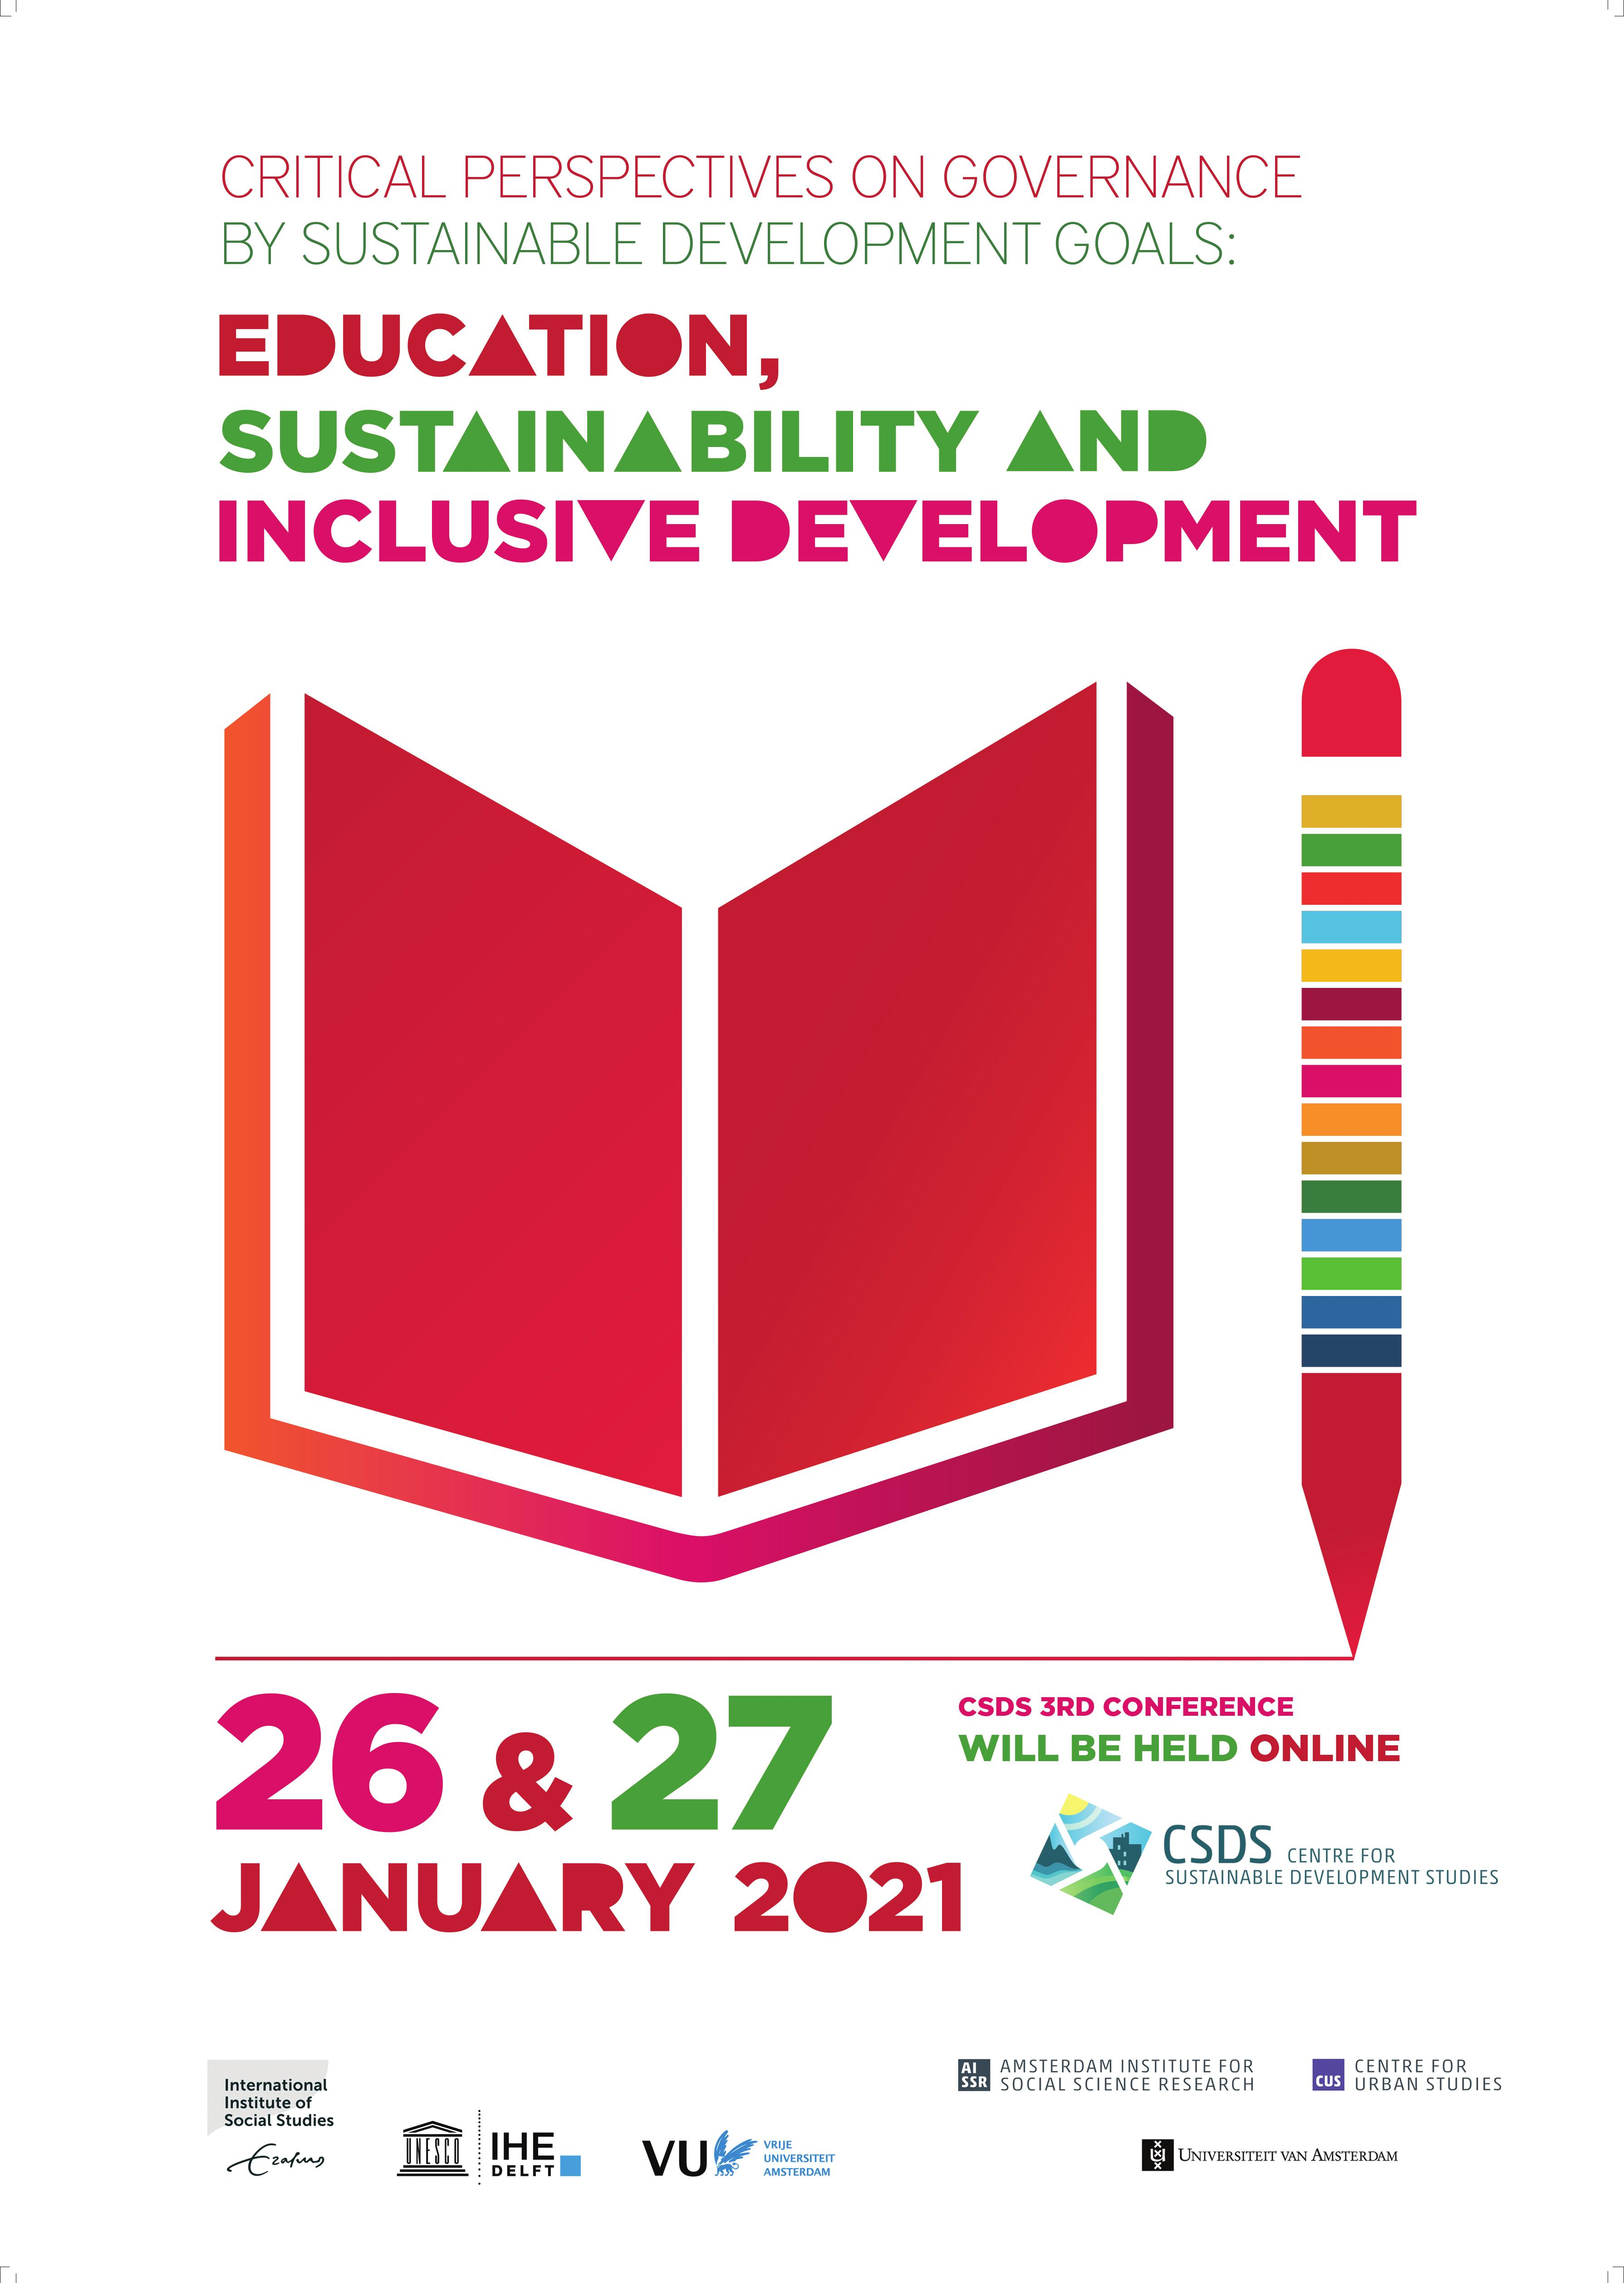 Conference on Critical Perspectives on Governance by Sustainable Development Goals